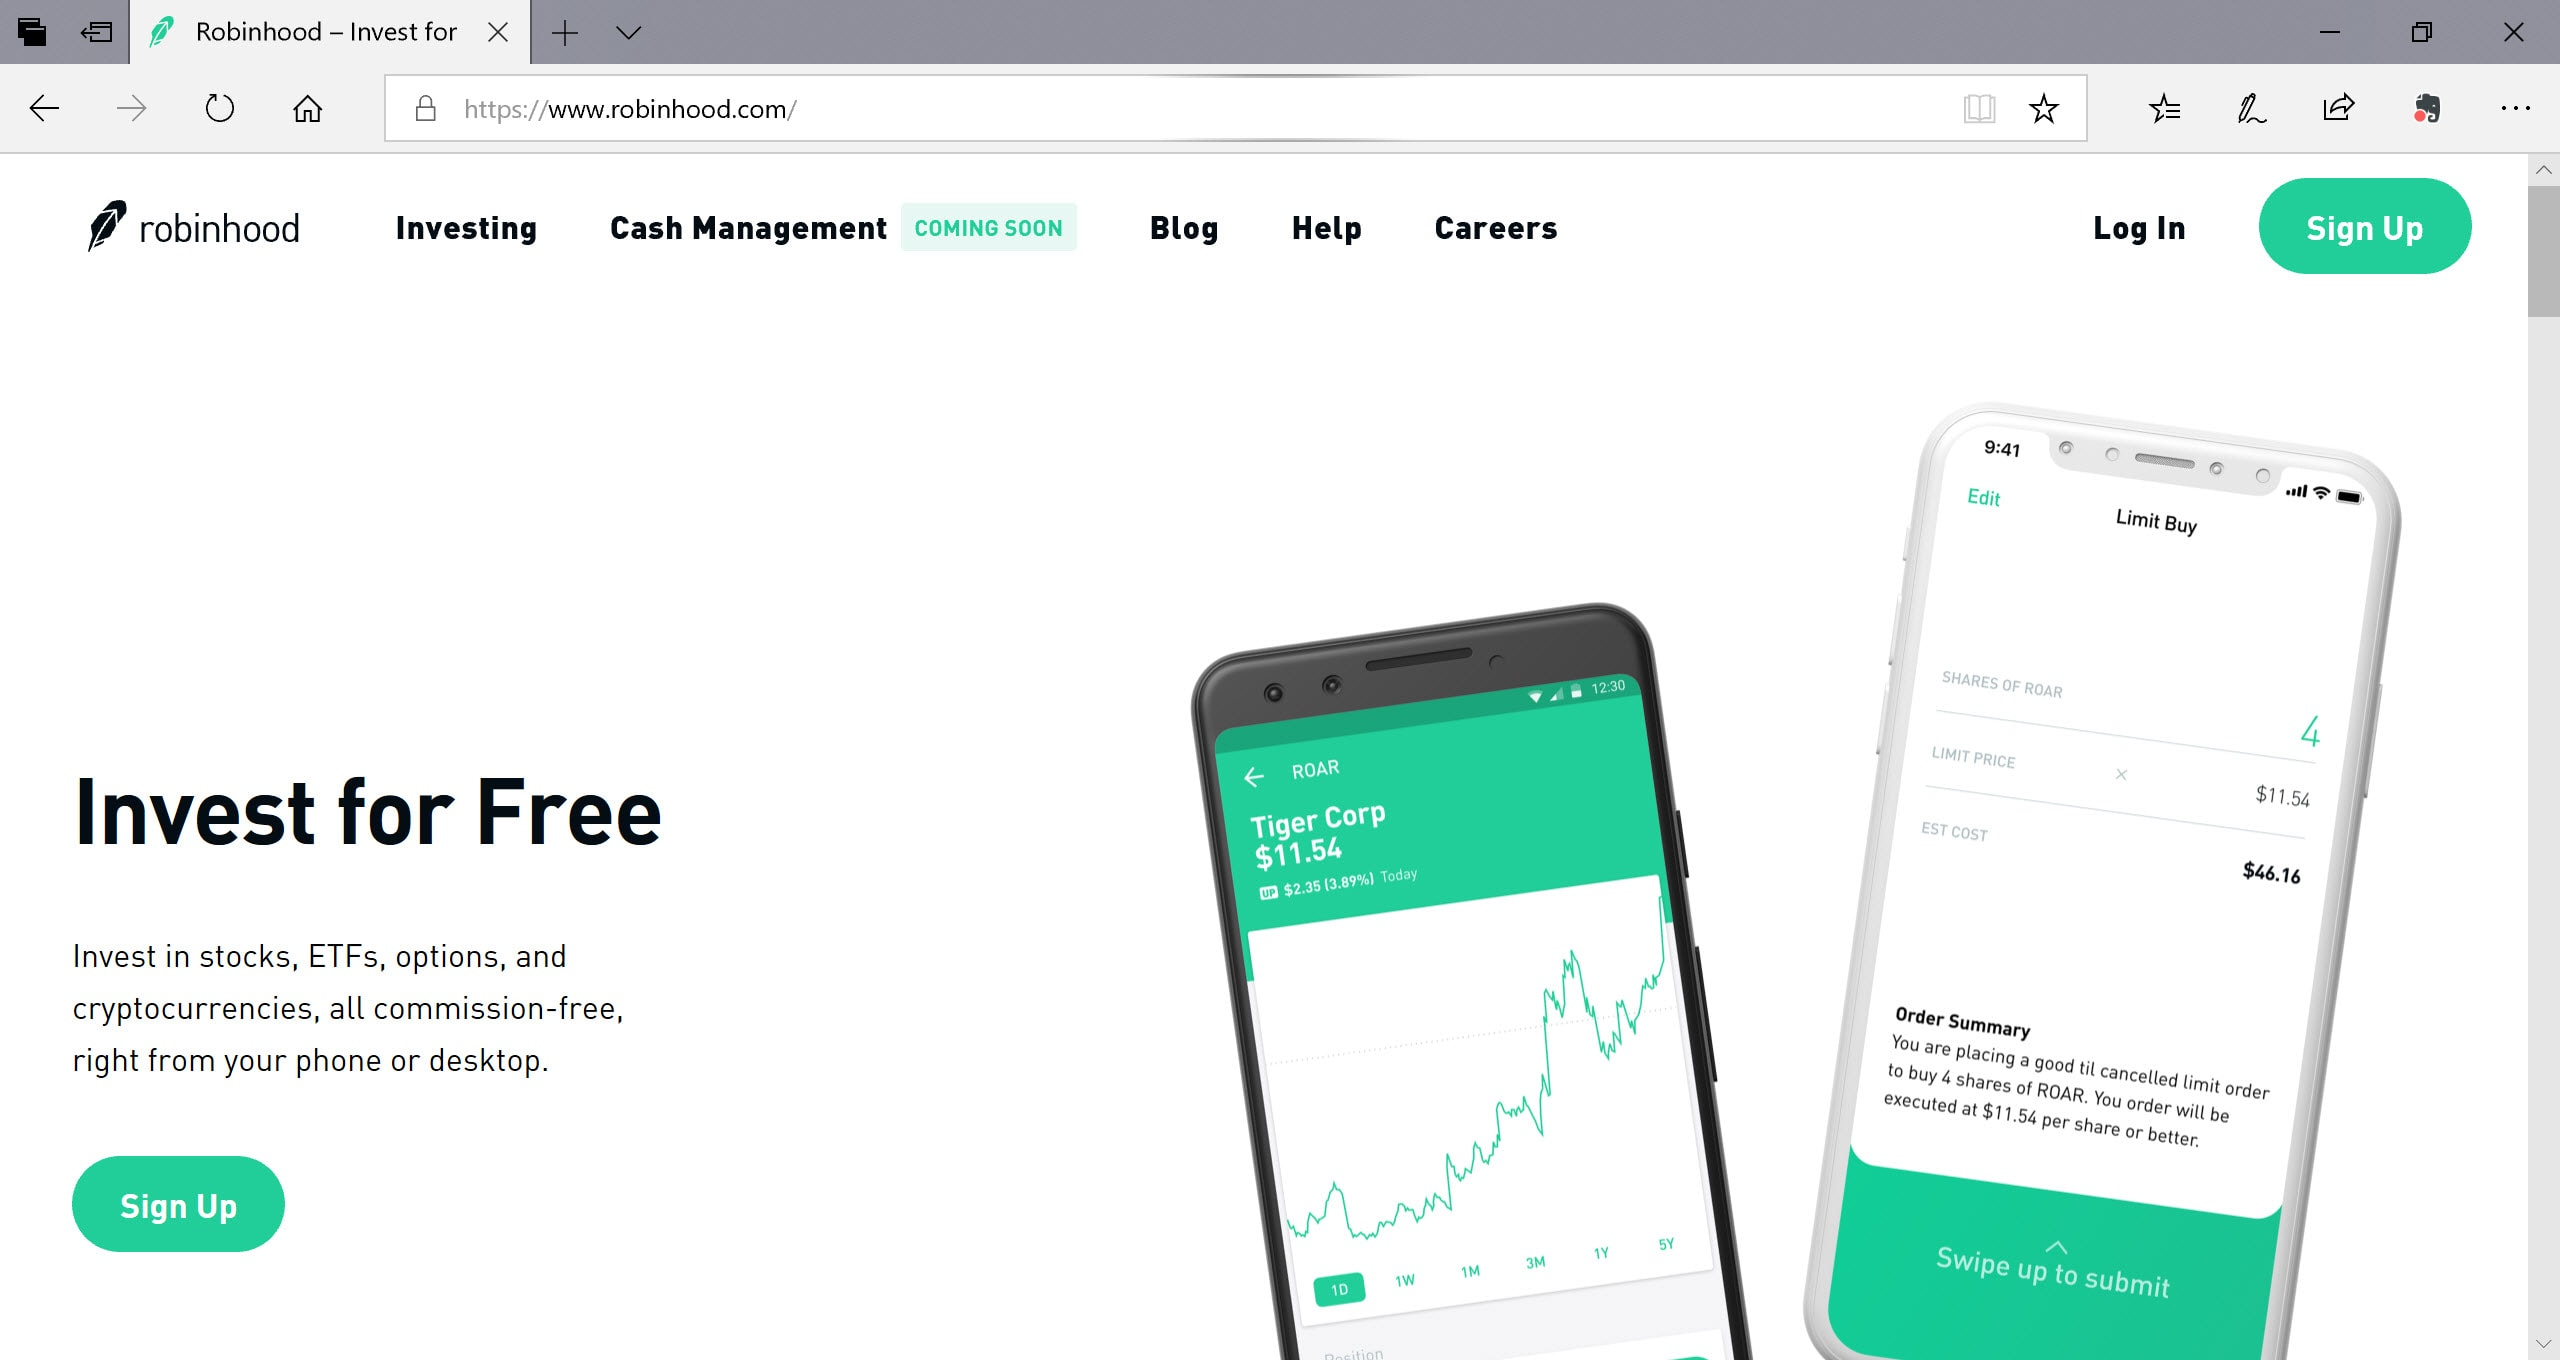 Online Warranty Robinhood Commission-Free Investing